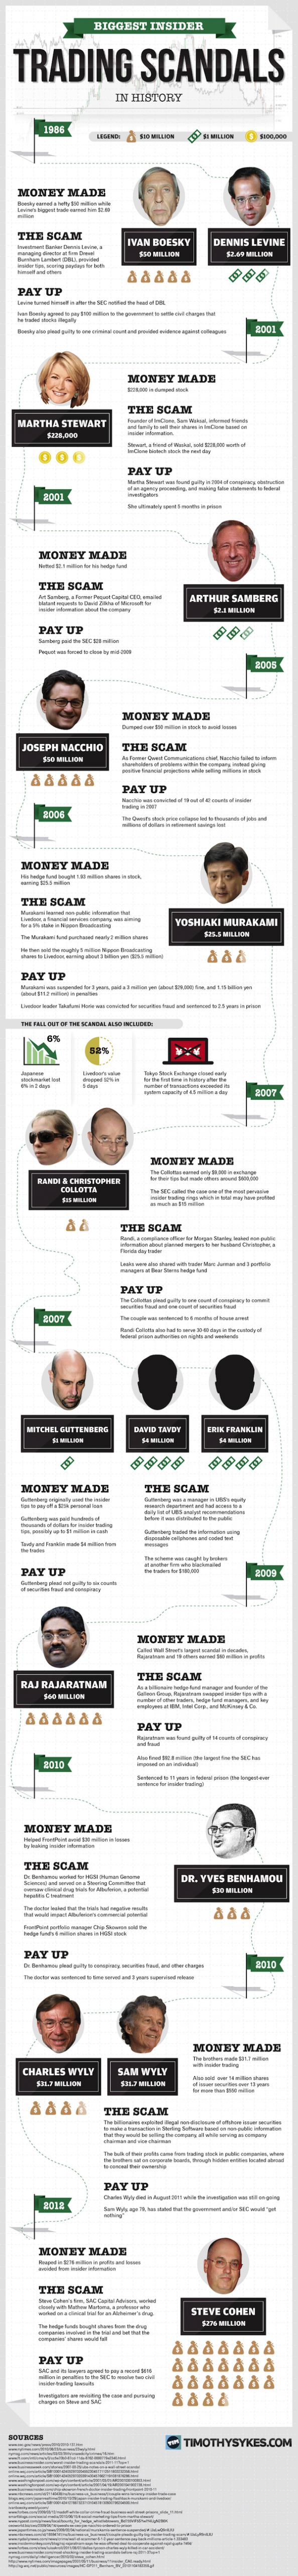 The Biggest Wall Street Insider Trading Scandals Infographic